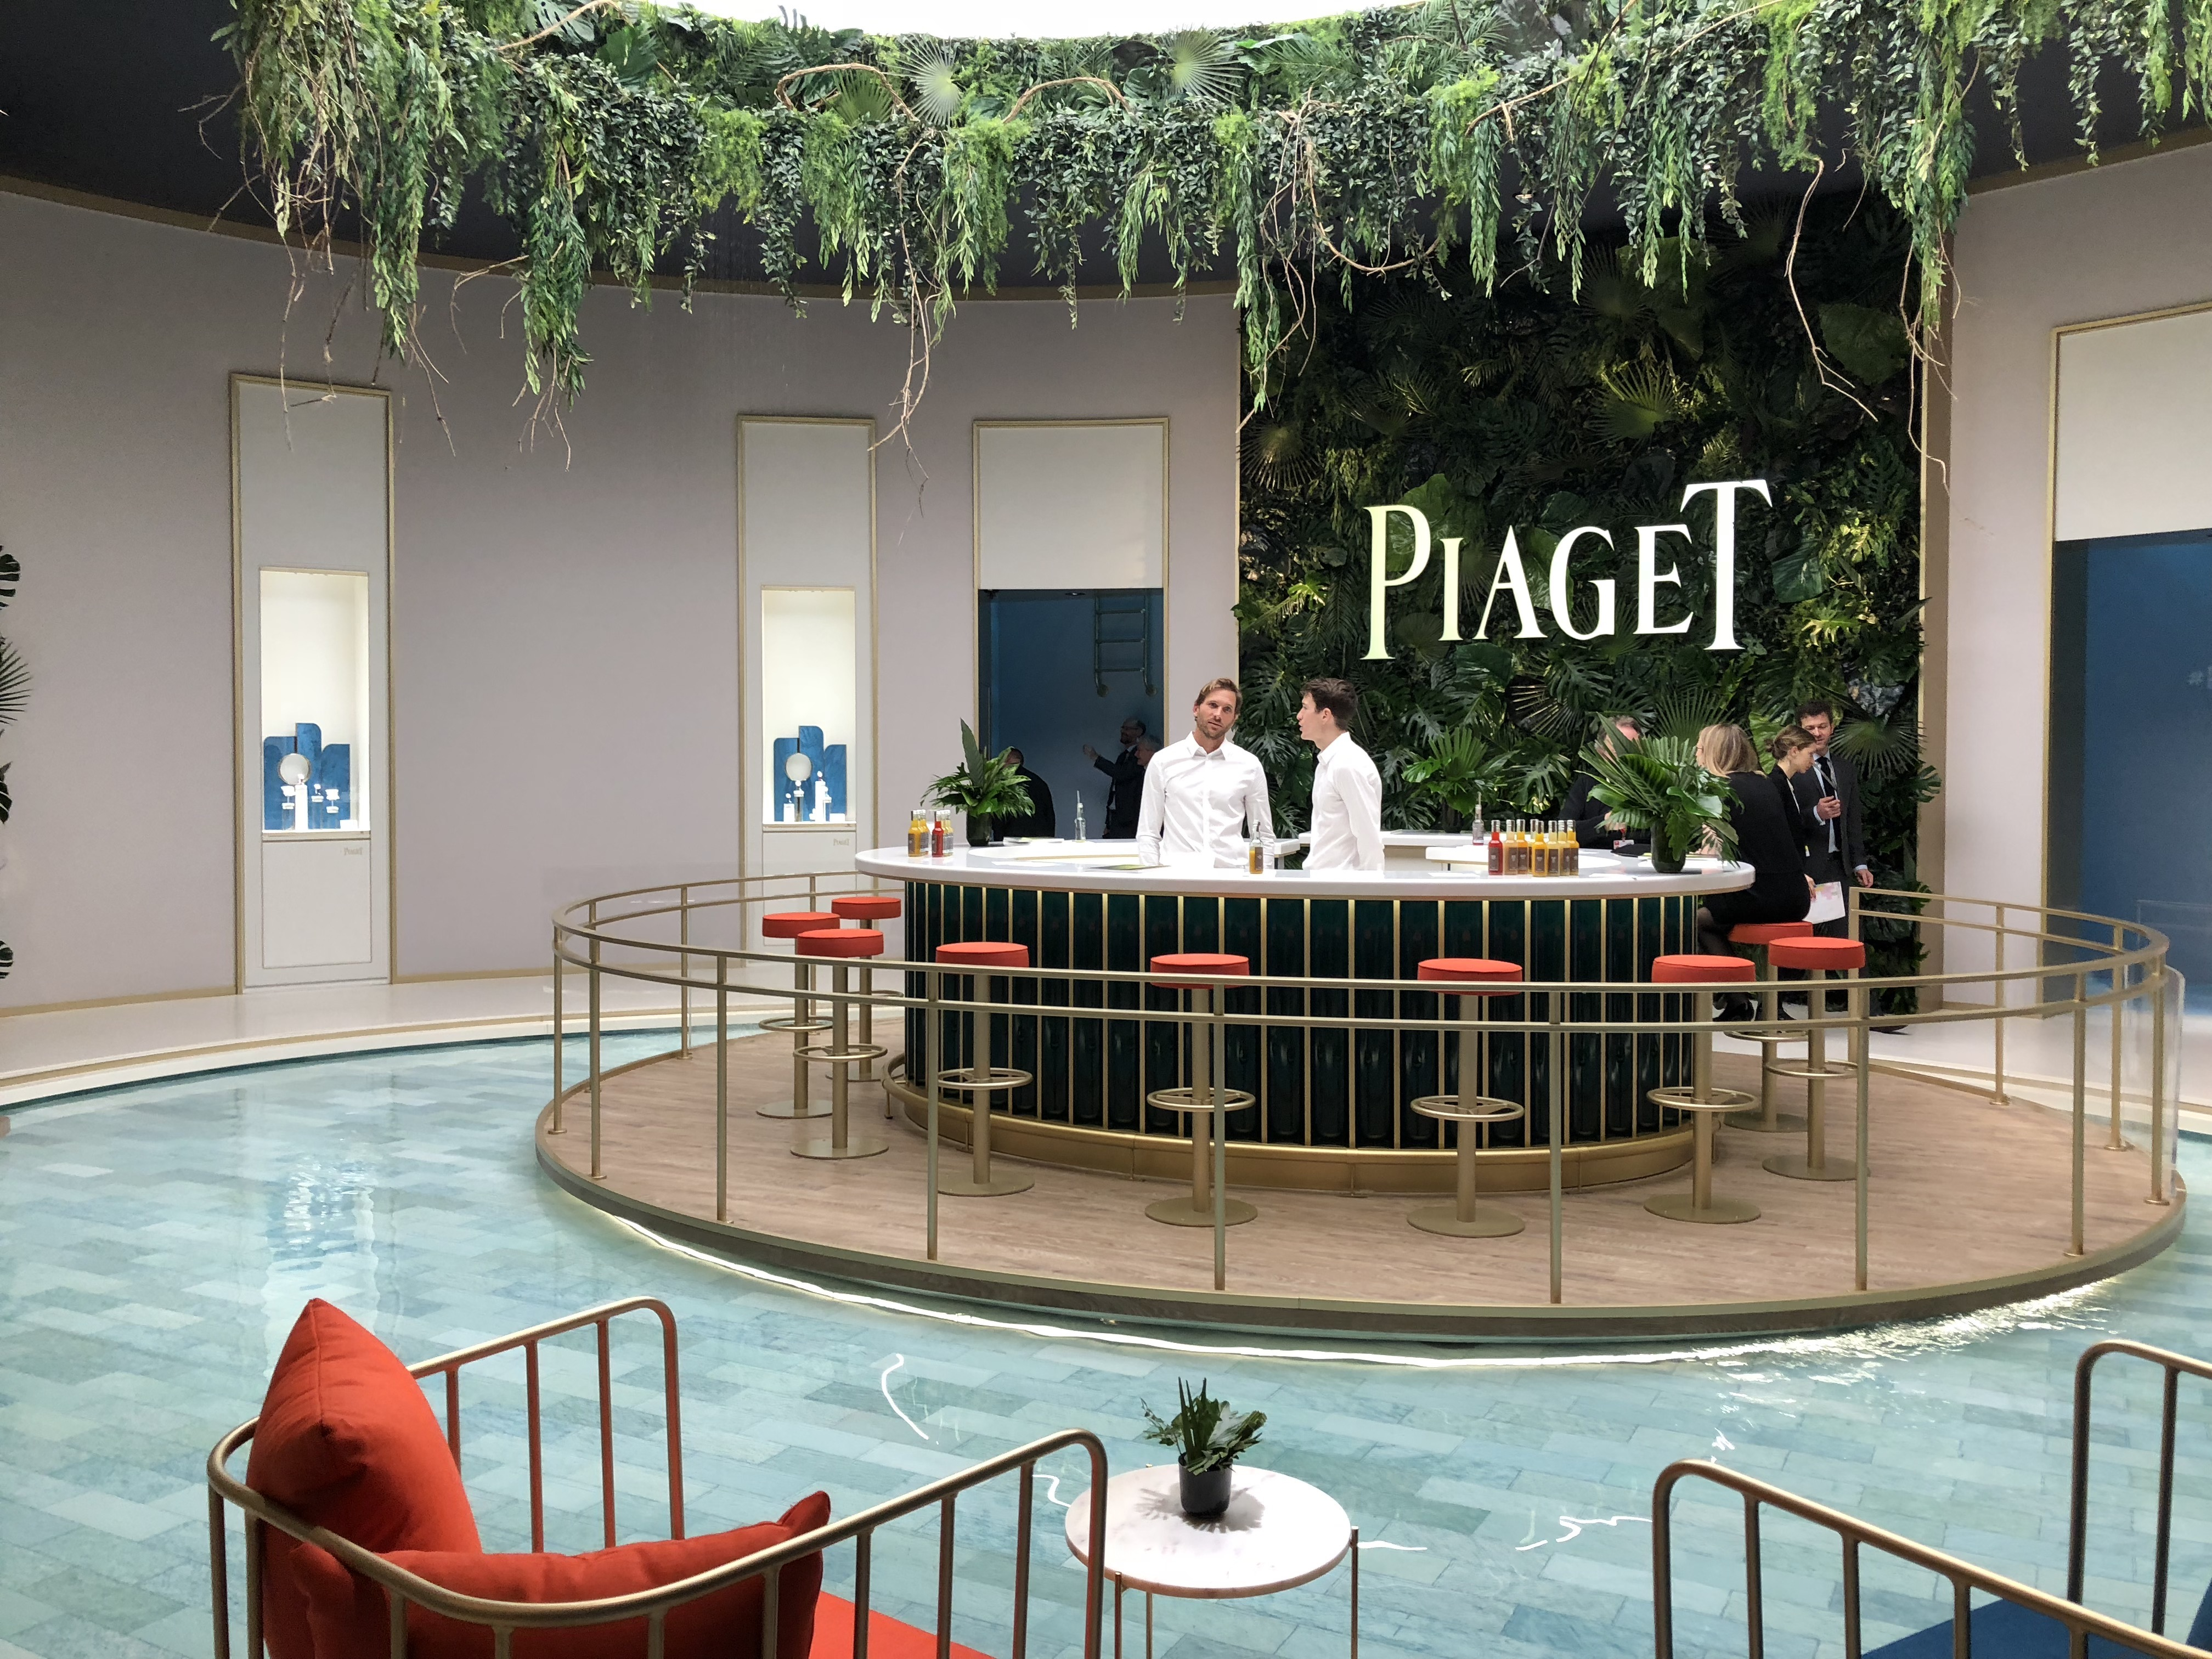 Piaget exhibition space at SIHH 2018